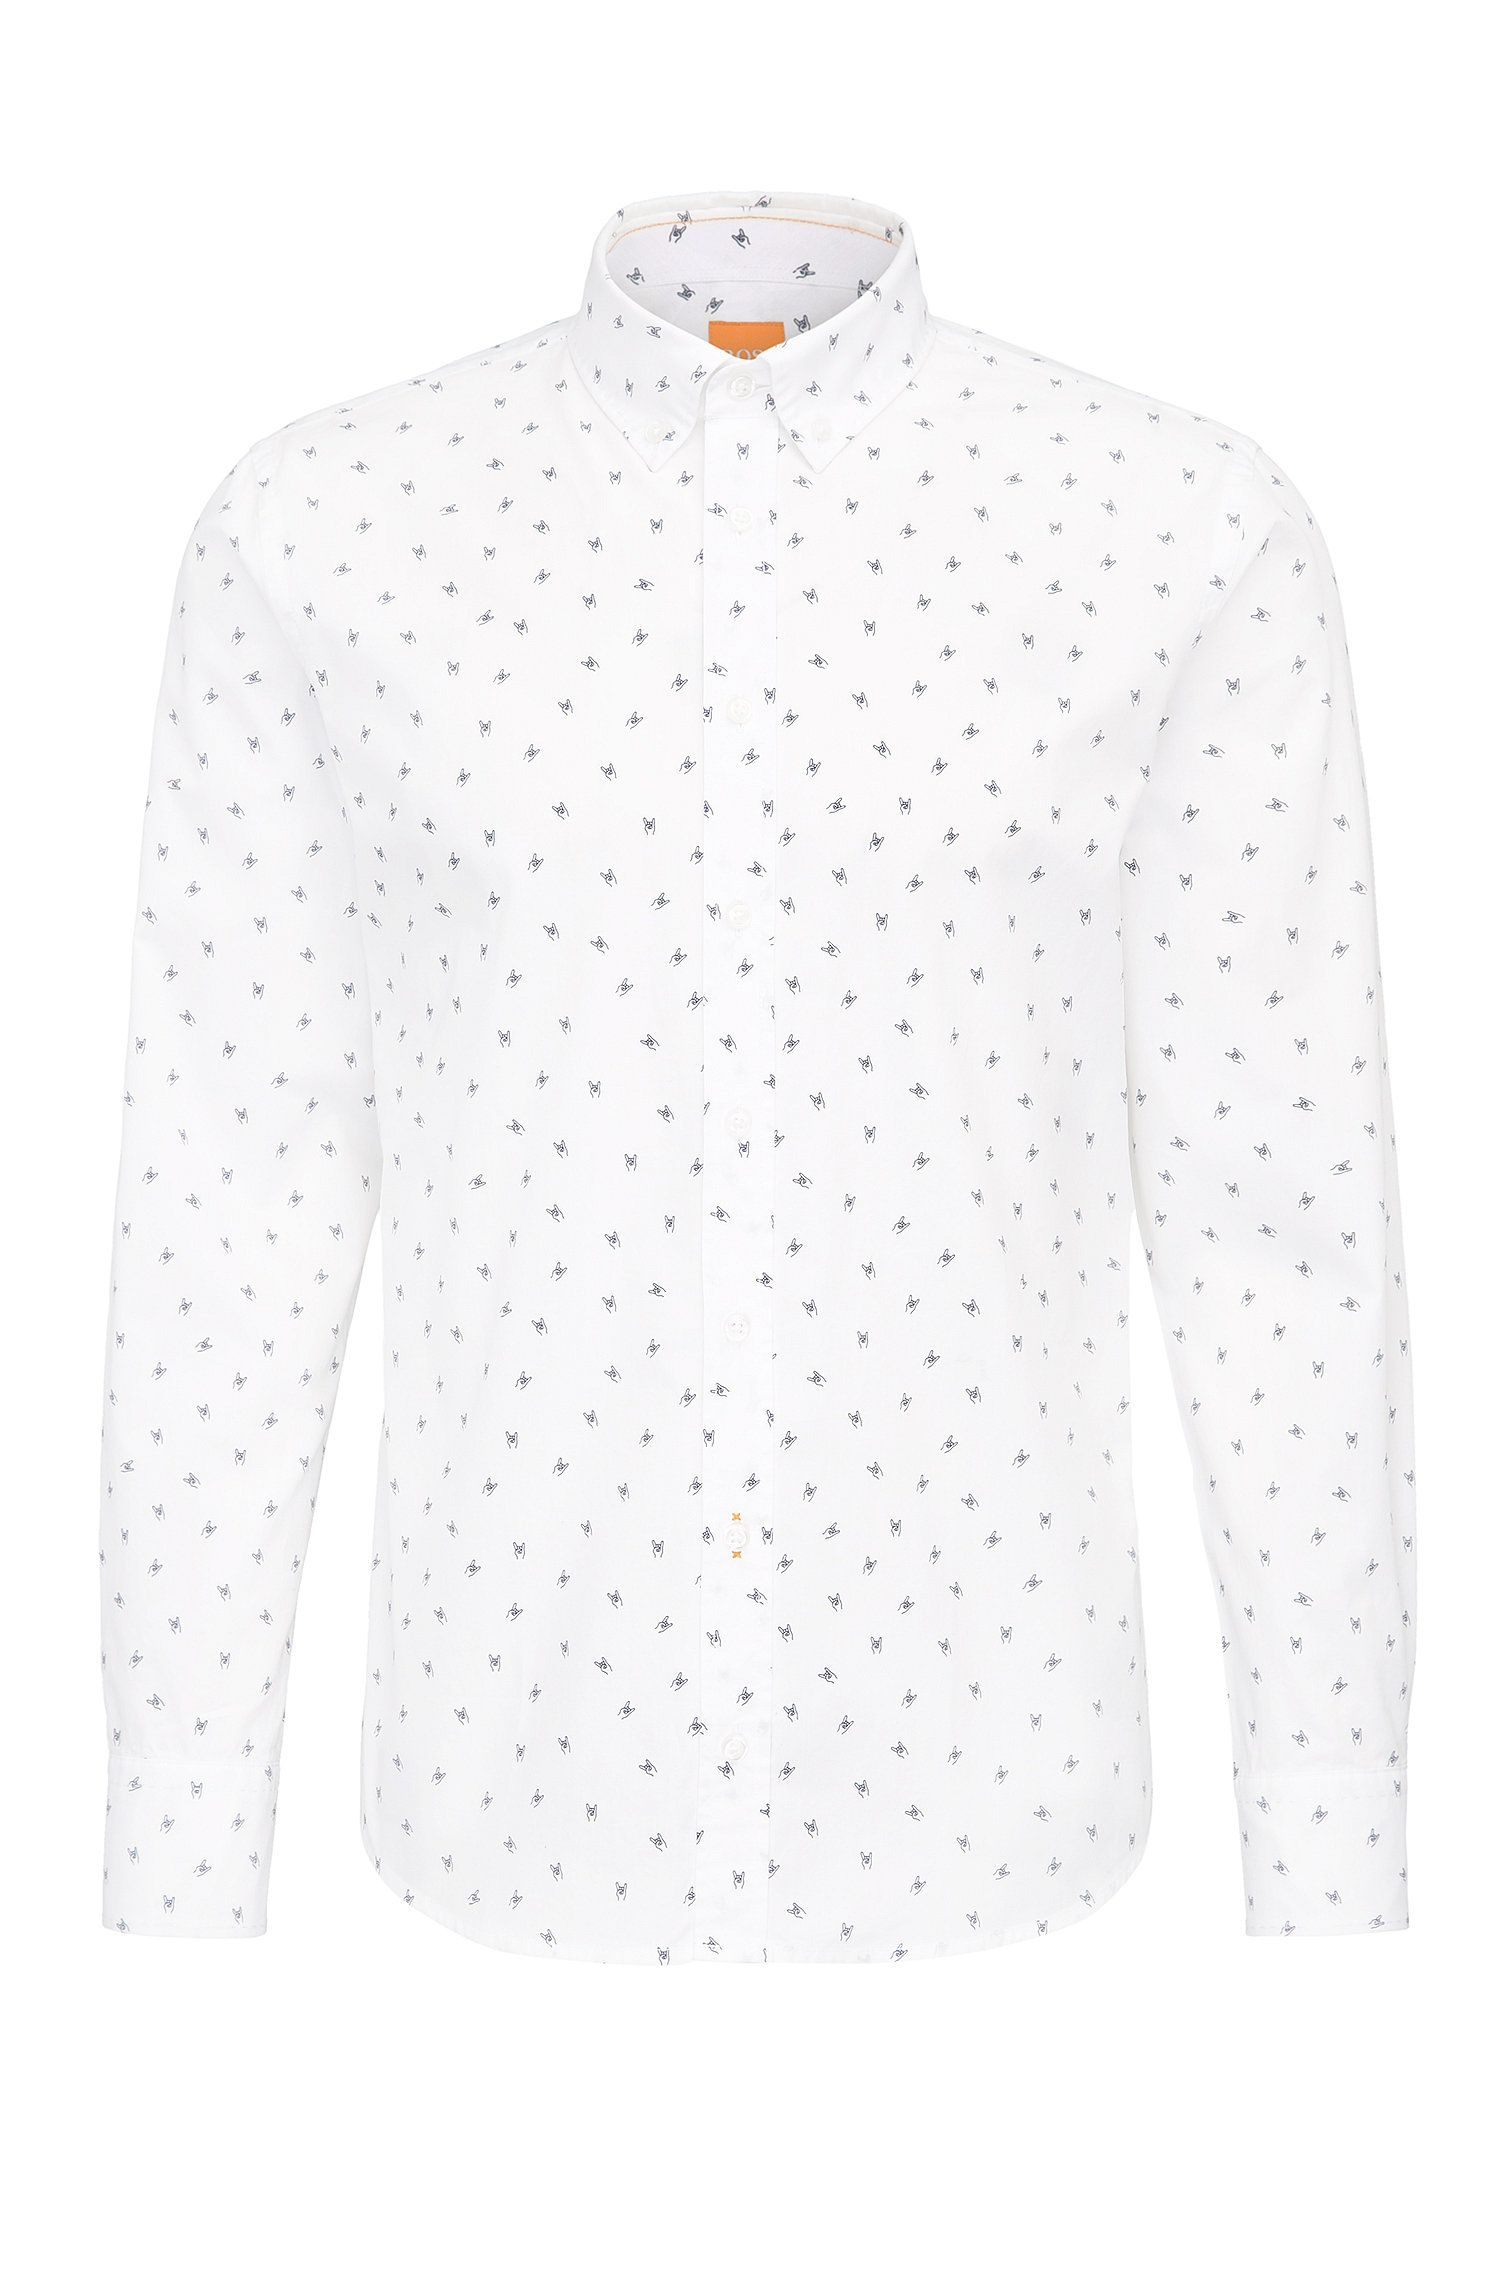 'Epreppy' | Slim Fit, Printed Cotton Button-Down Shirt